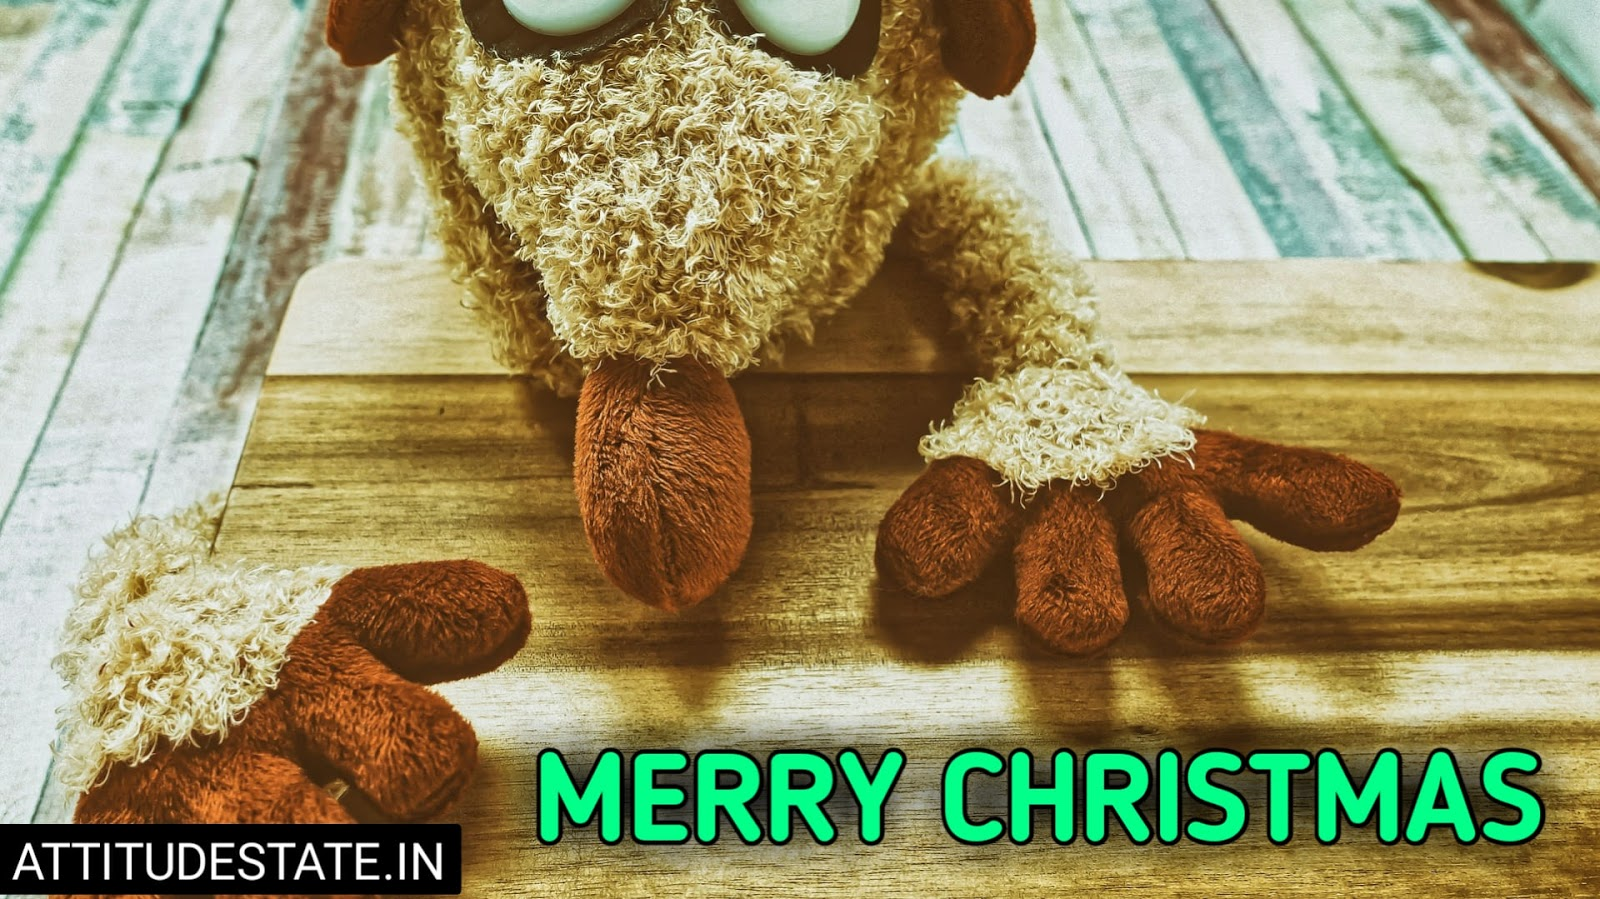 funny ways to say merry christmas on facebook